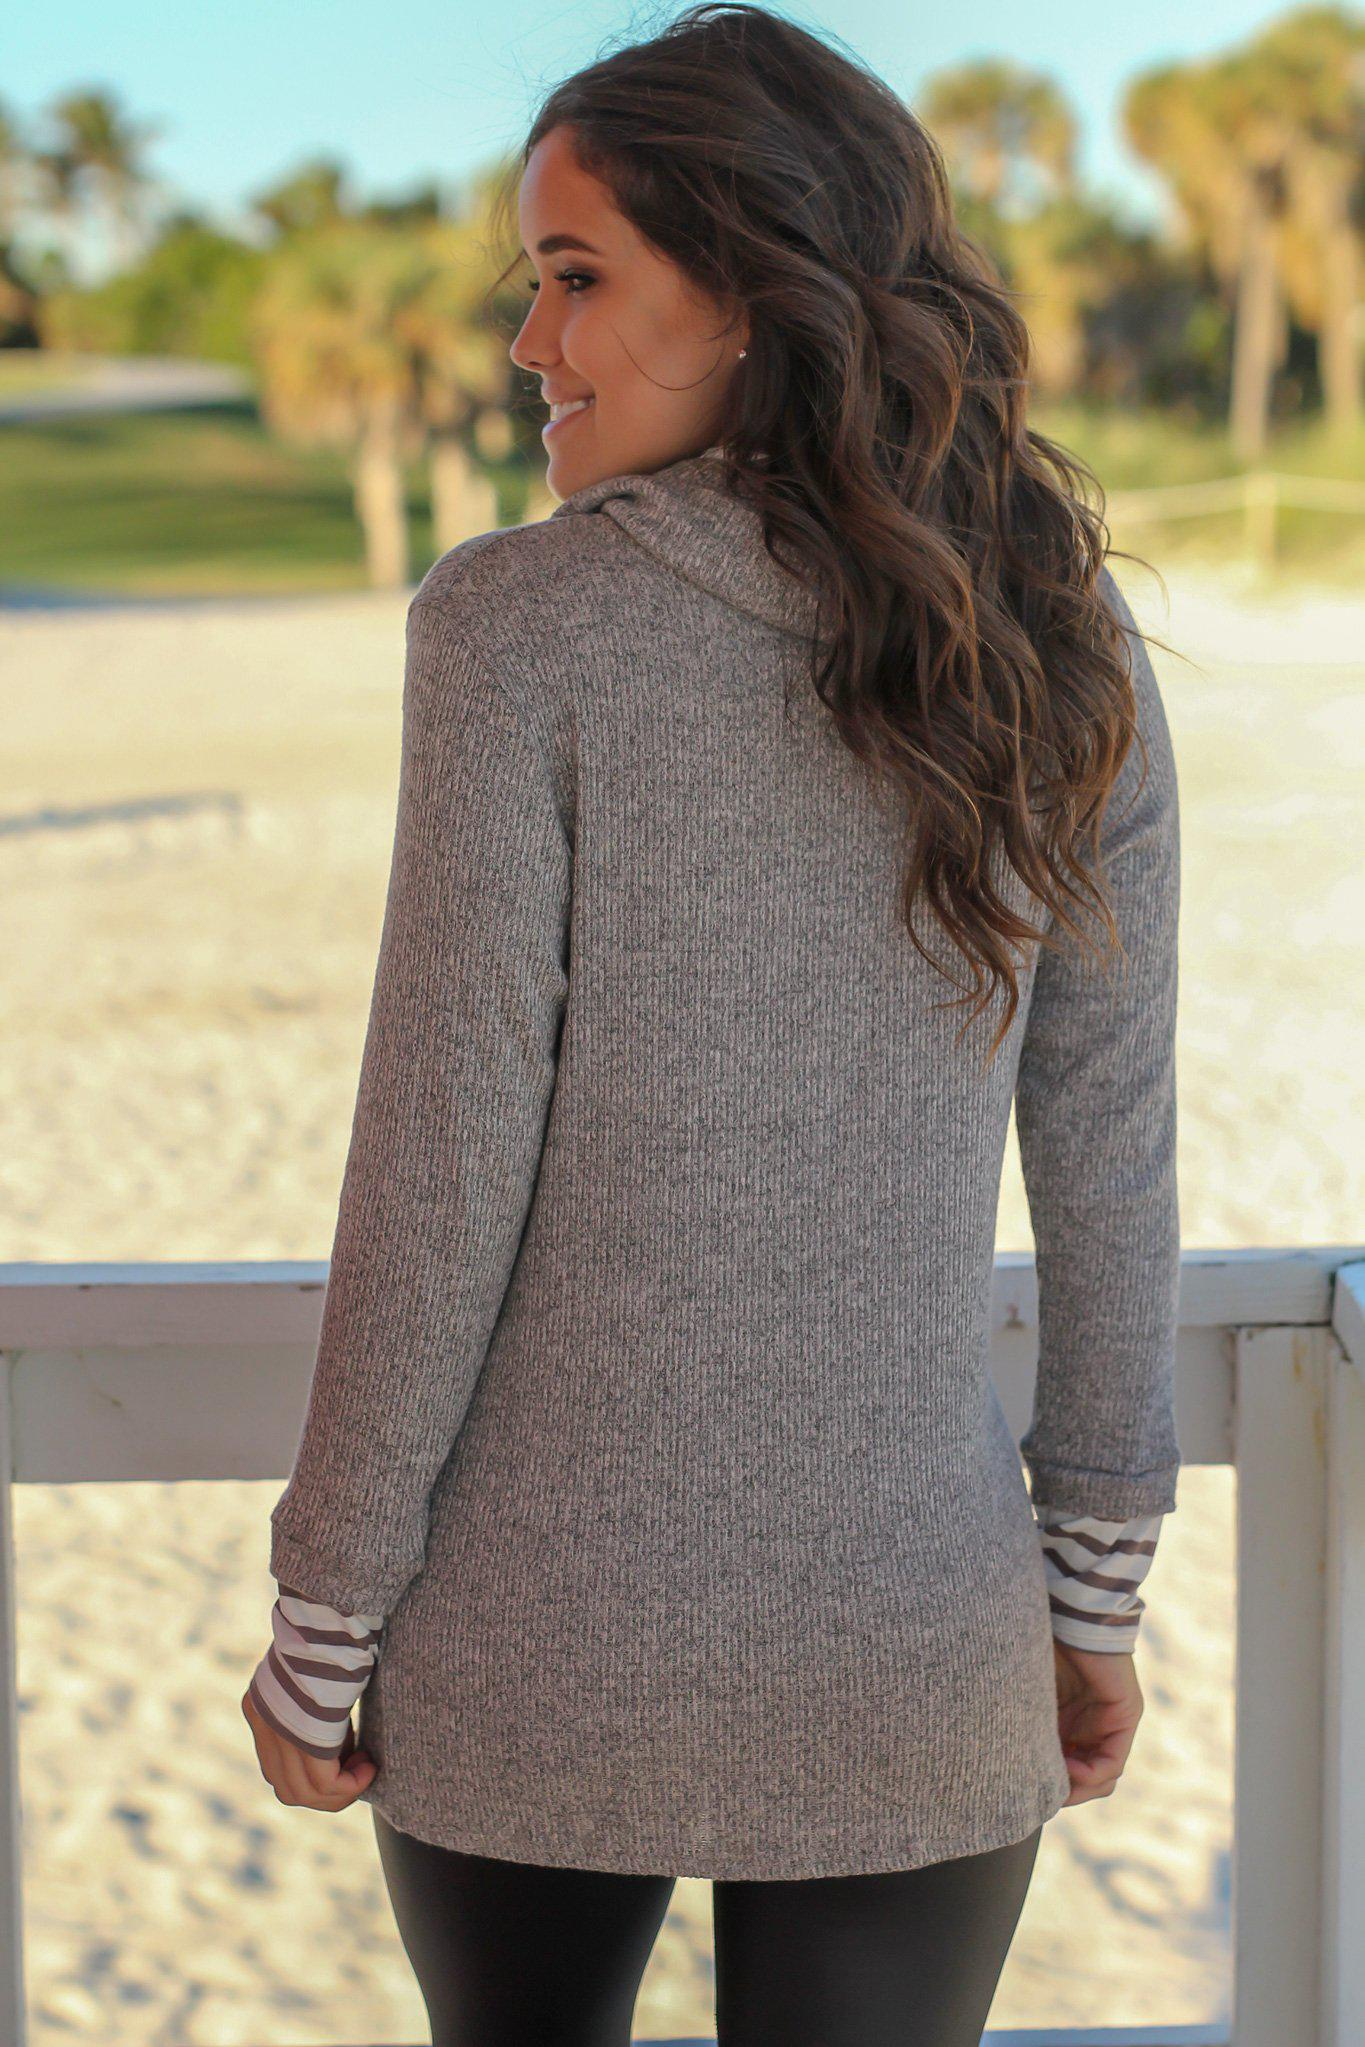 Mocha Cowl Neck Top with Stripes